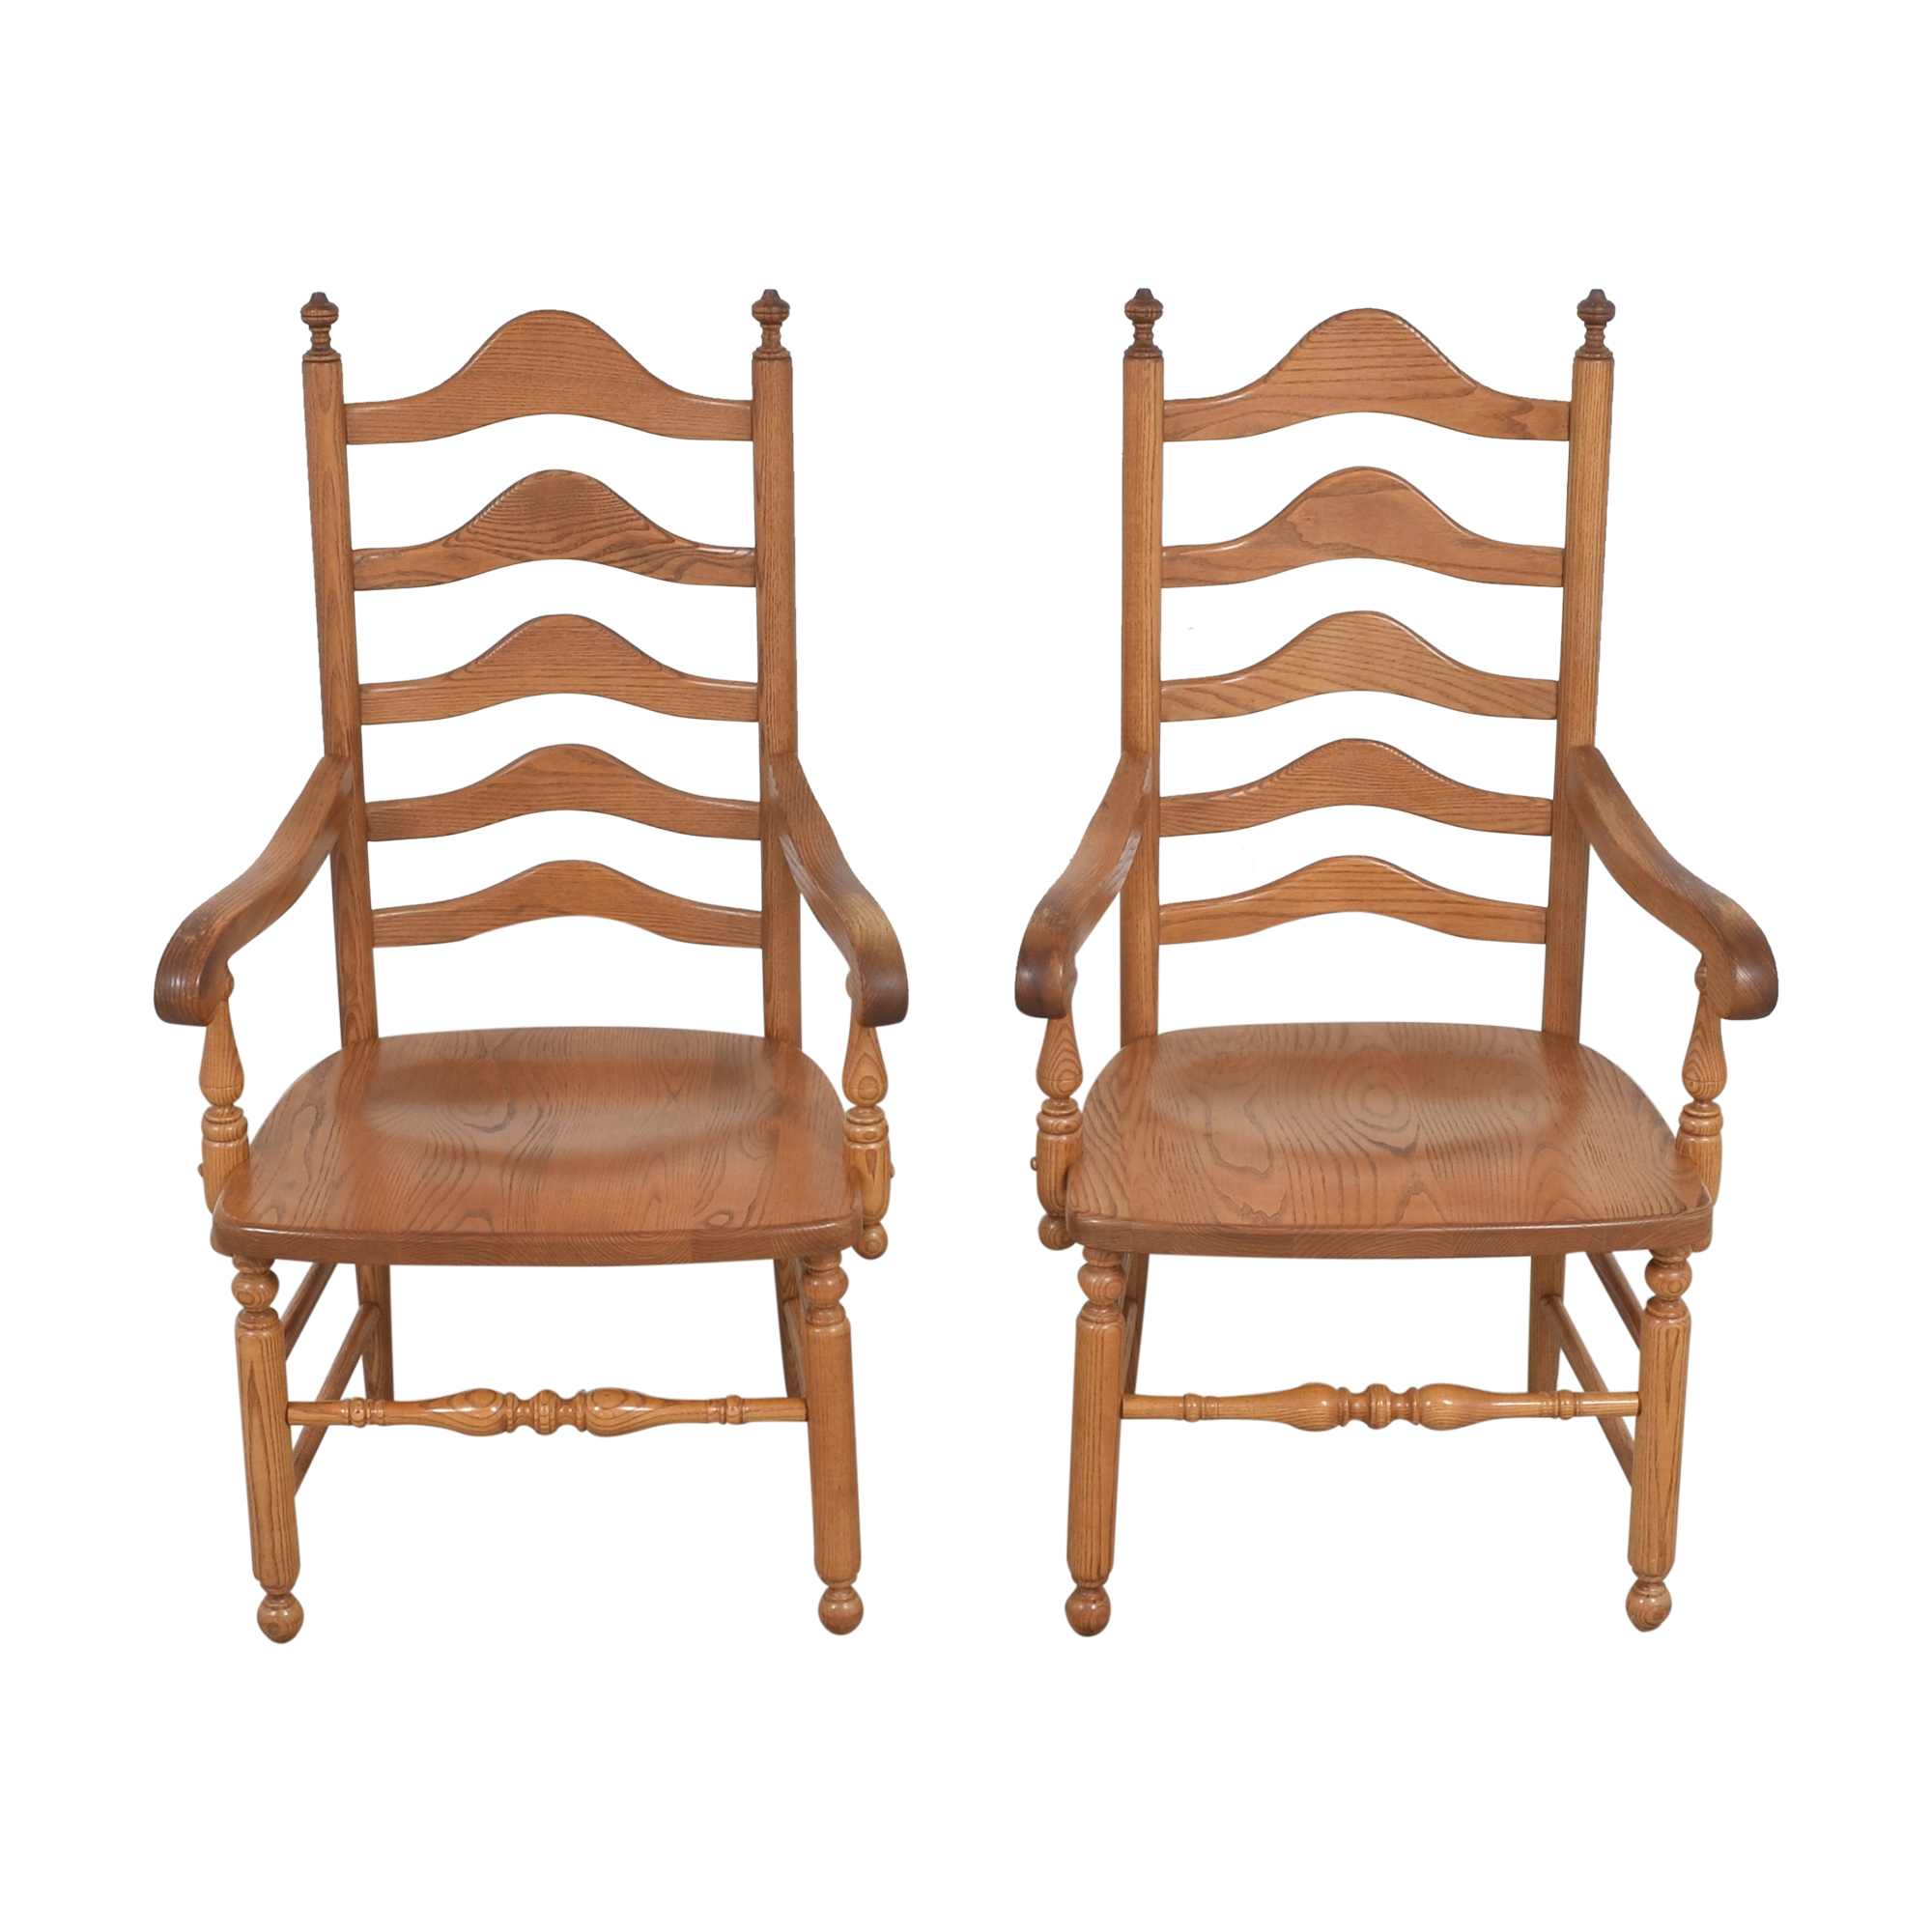 S. Bent & Bros S. Bent & Bros Ladder Back Dining Arm Chairs ma